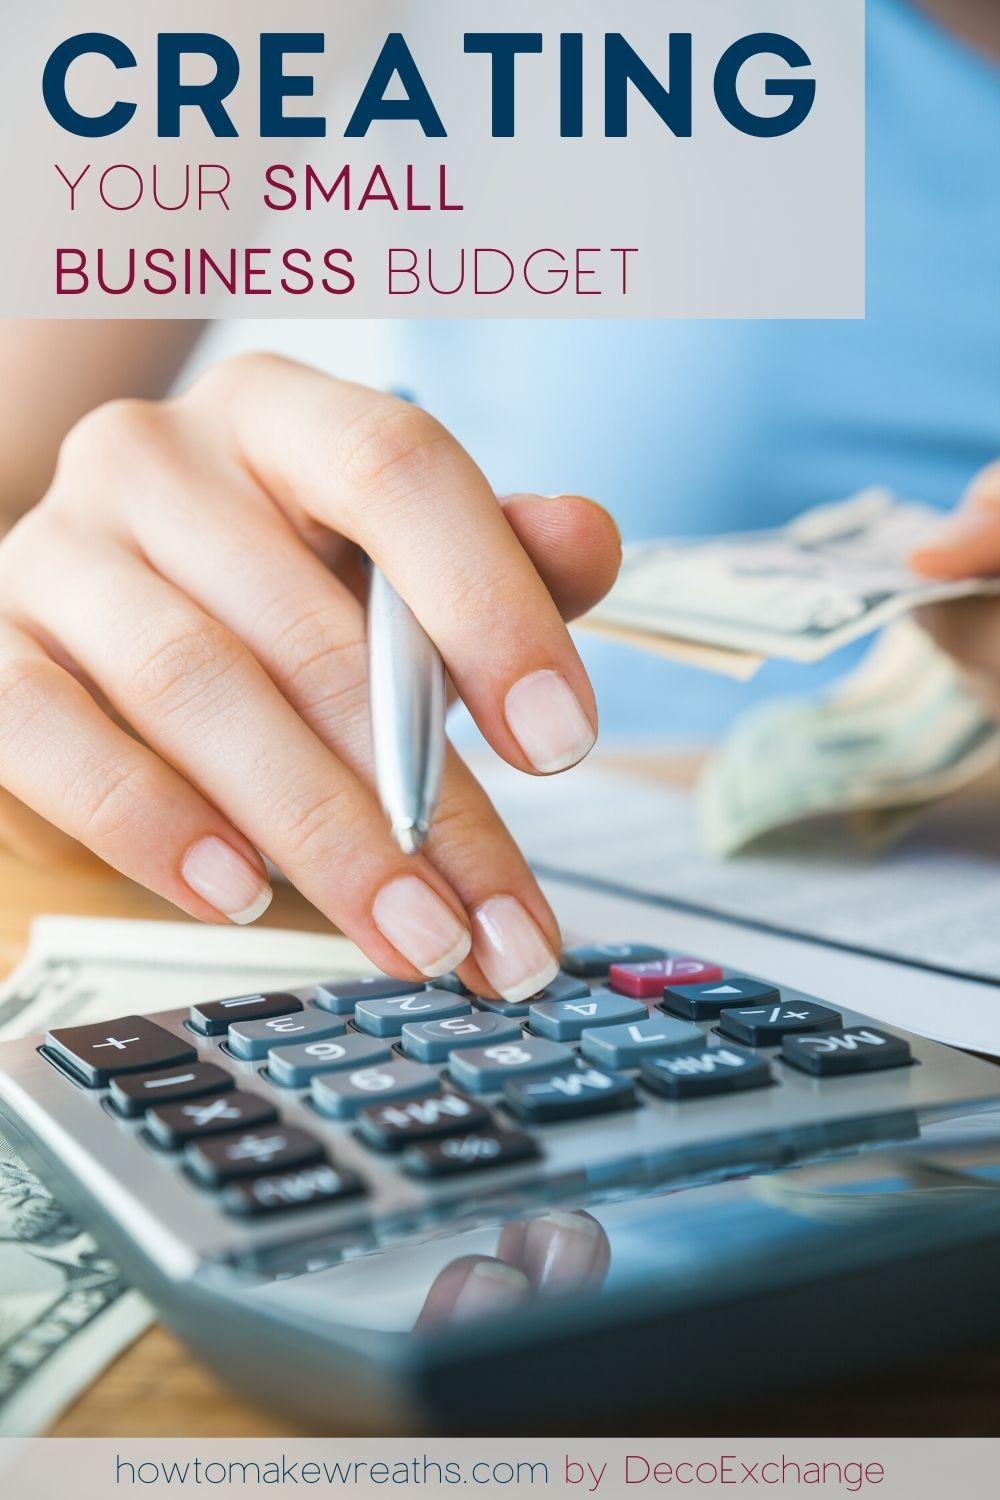 Business Budget Template 101 Creating Your Small Business Budget How To Make Wreaths Business Budget Template Budgeting Budget Template